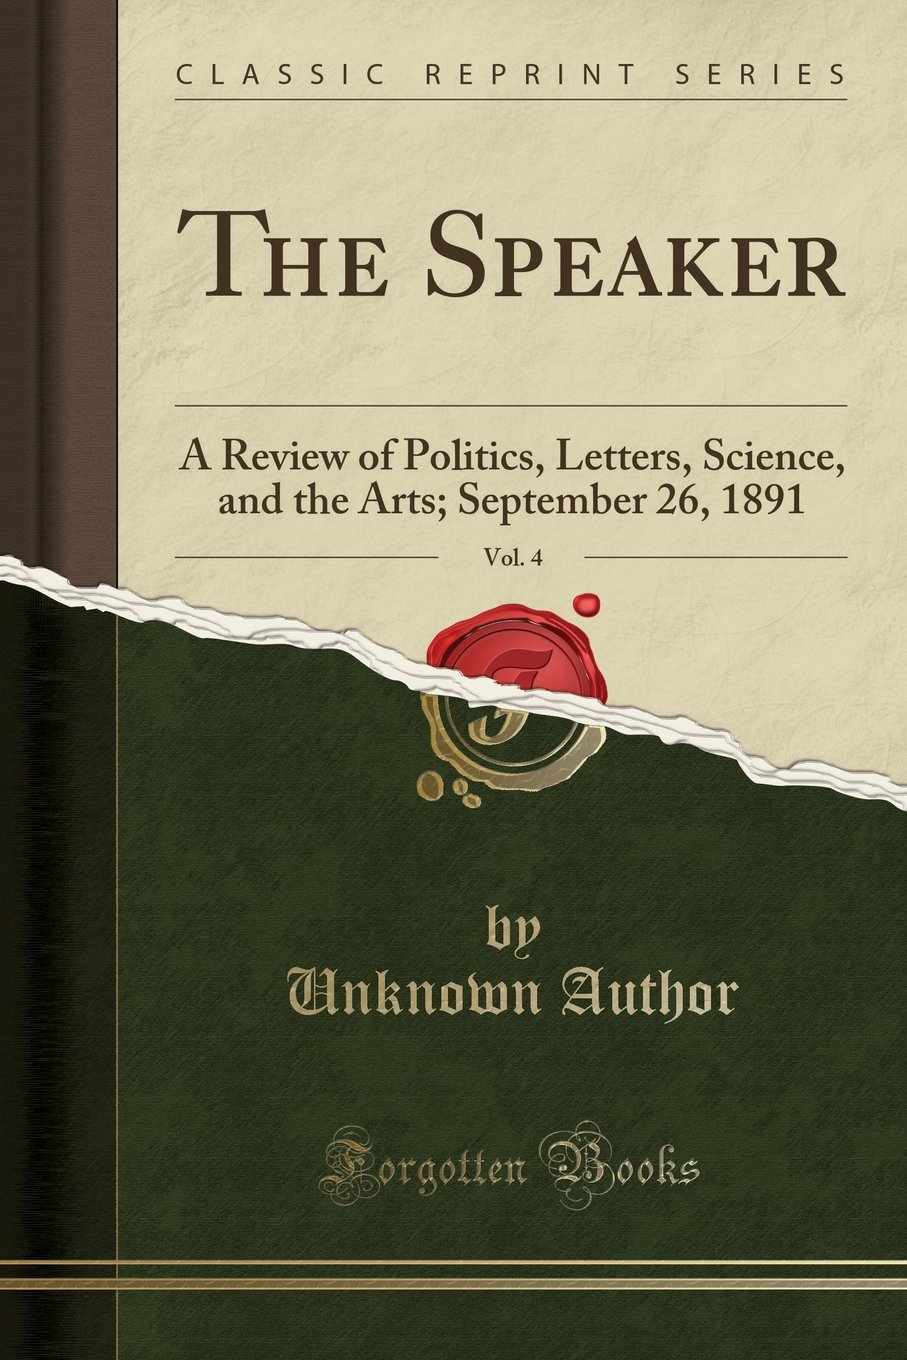 Download The Speaker, Vol. 4: A Review of Politics, Letters, Science, and the Arts; September 26, 1891 (Classic Reprint) PDF